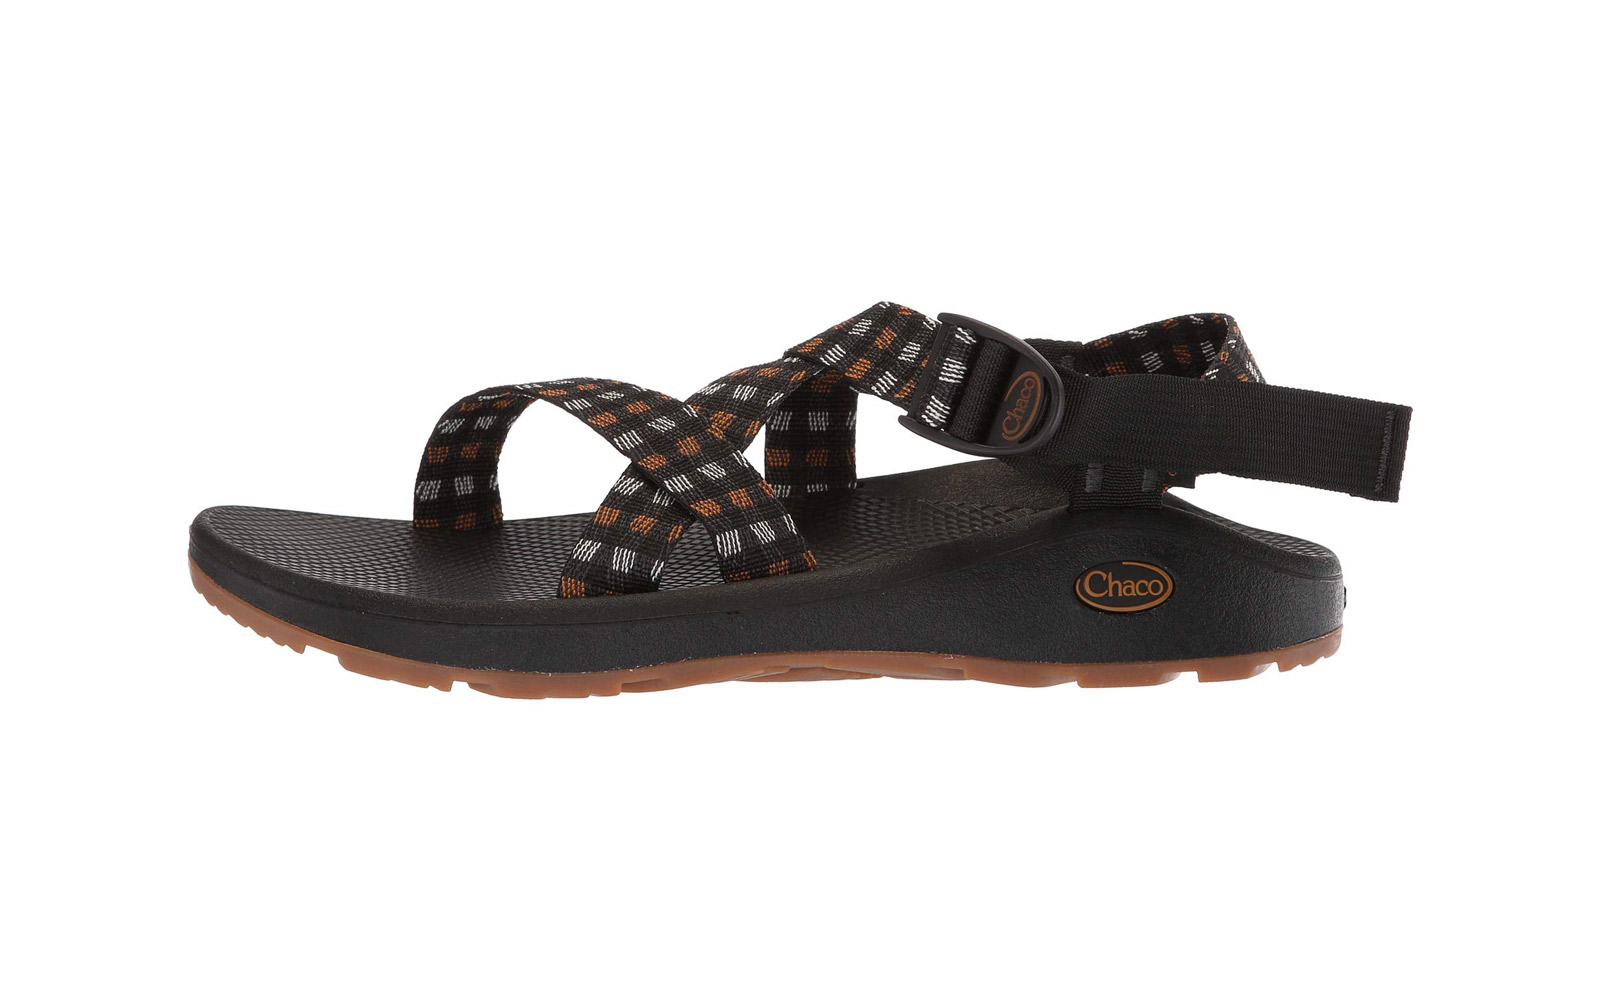 d4df44cea944 The Best Men s Sandals to Pack for Your Next Vacation